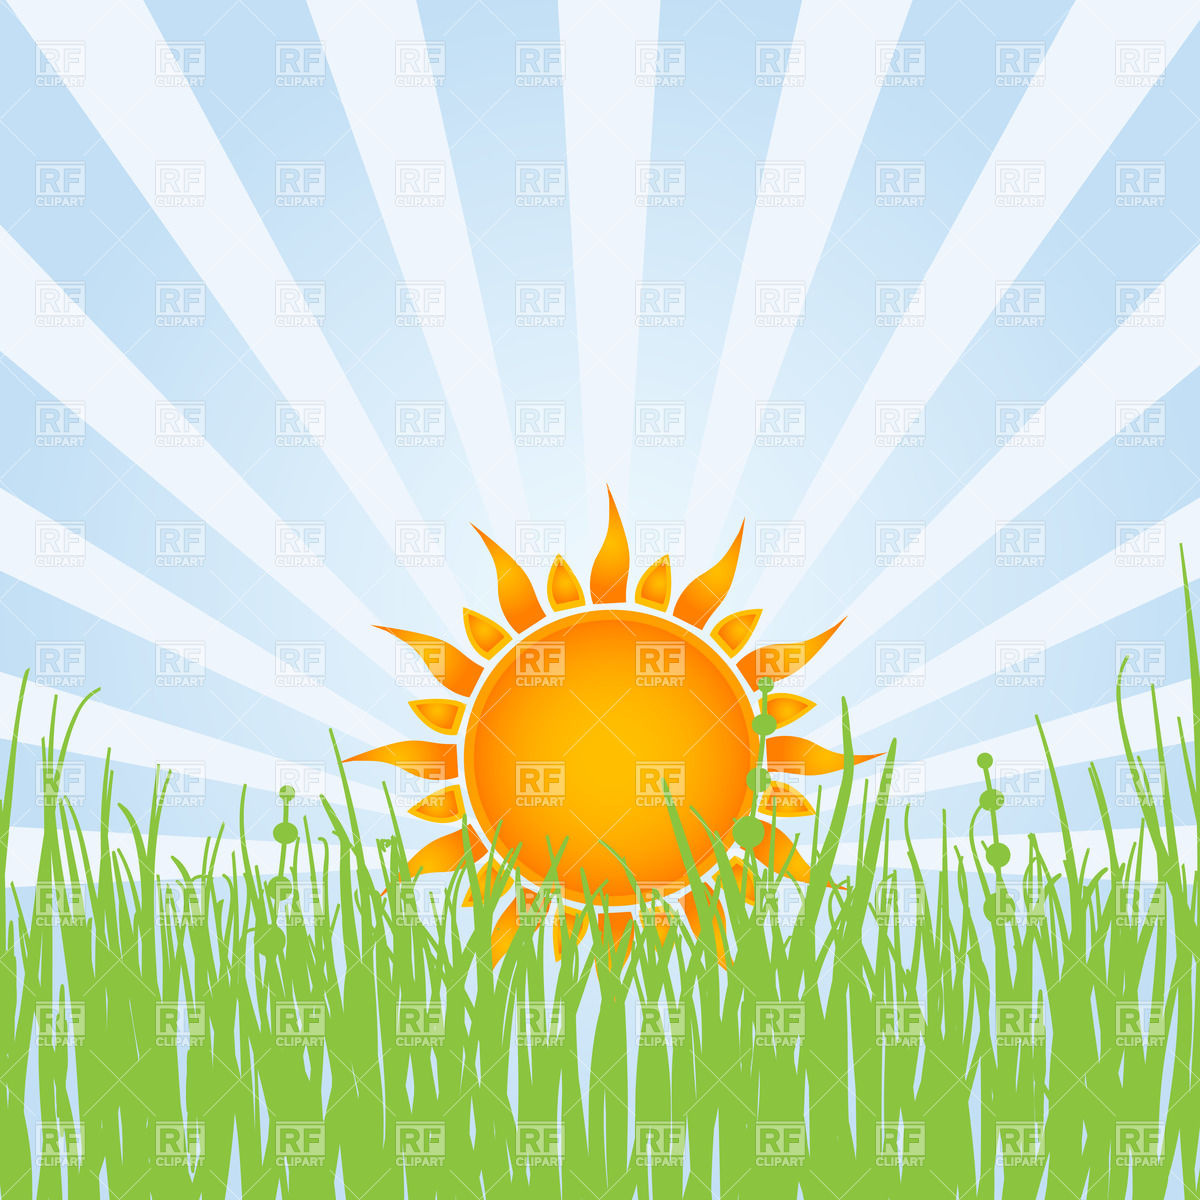 Sunrise clip art vector sunrise graphics clipart me.